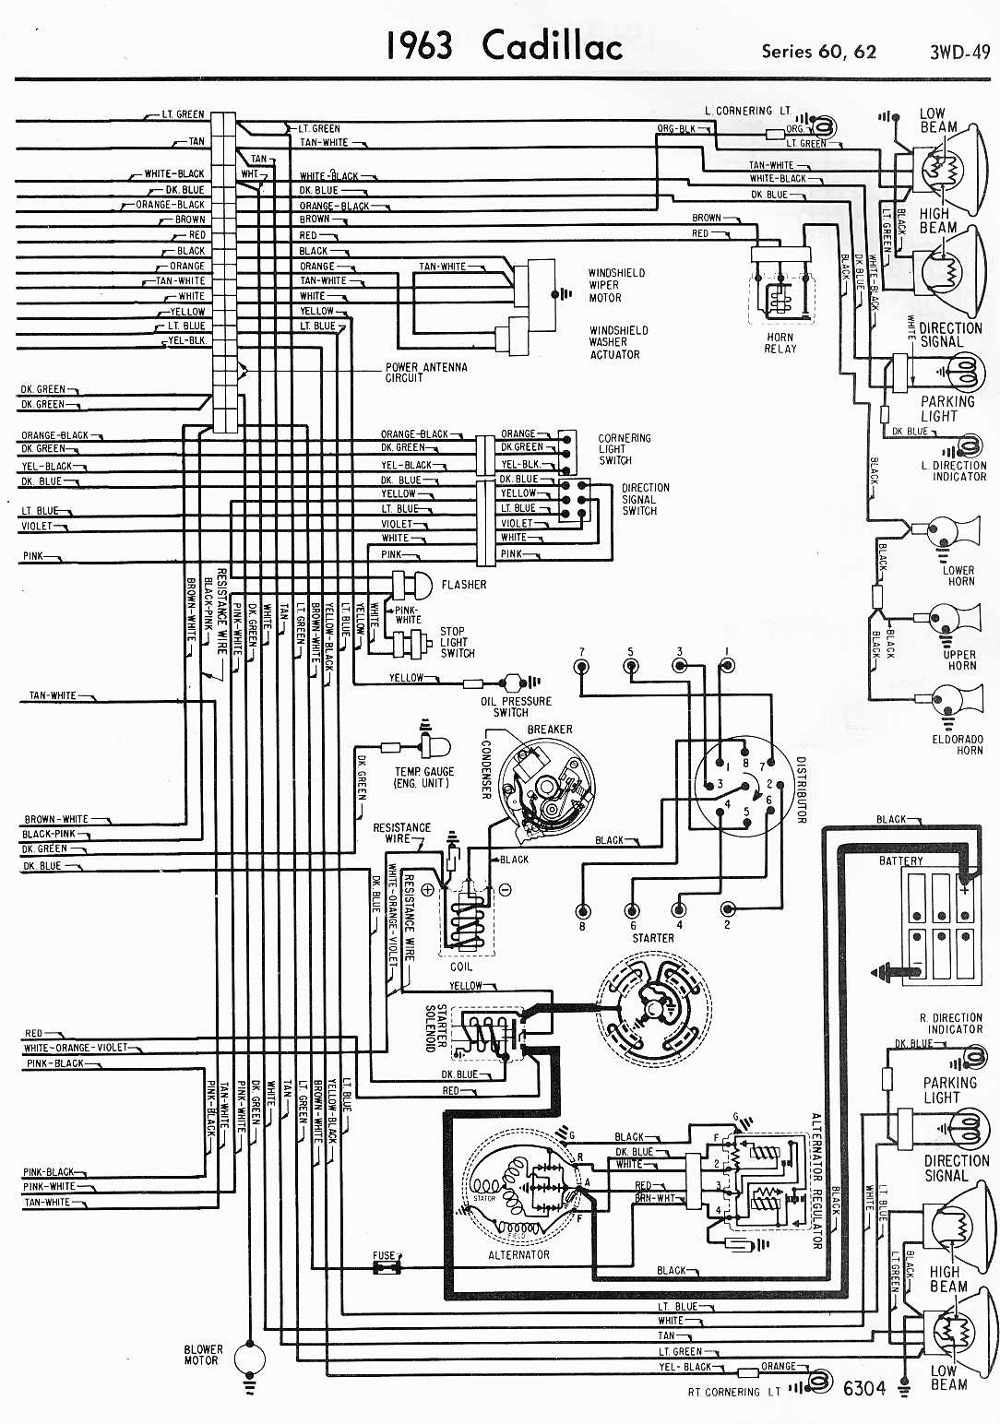 [XOTG_4463]  5377E48 Gm Air Conditioning Wiring Diagram | Wiring Library | Delco Radio Wiring Diagram 1964 |  | Wiring Library